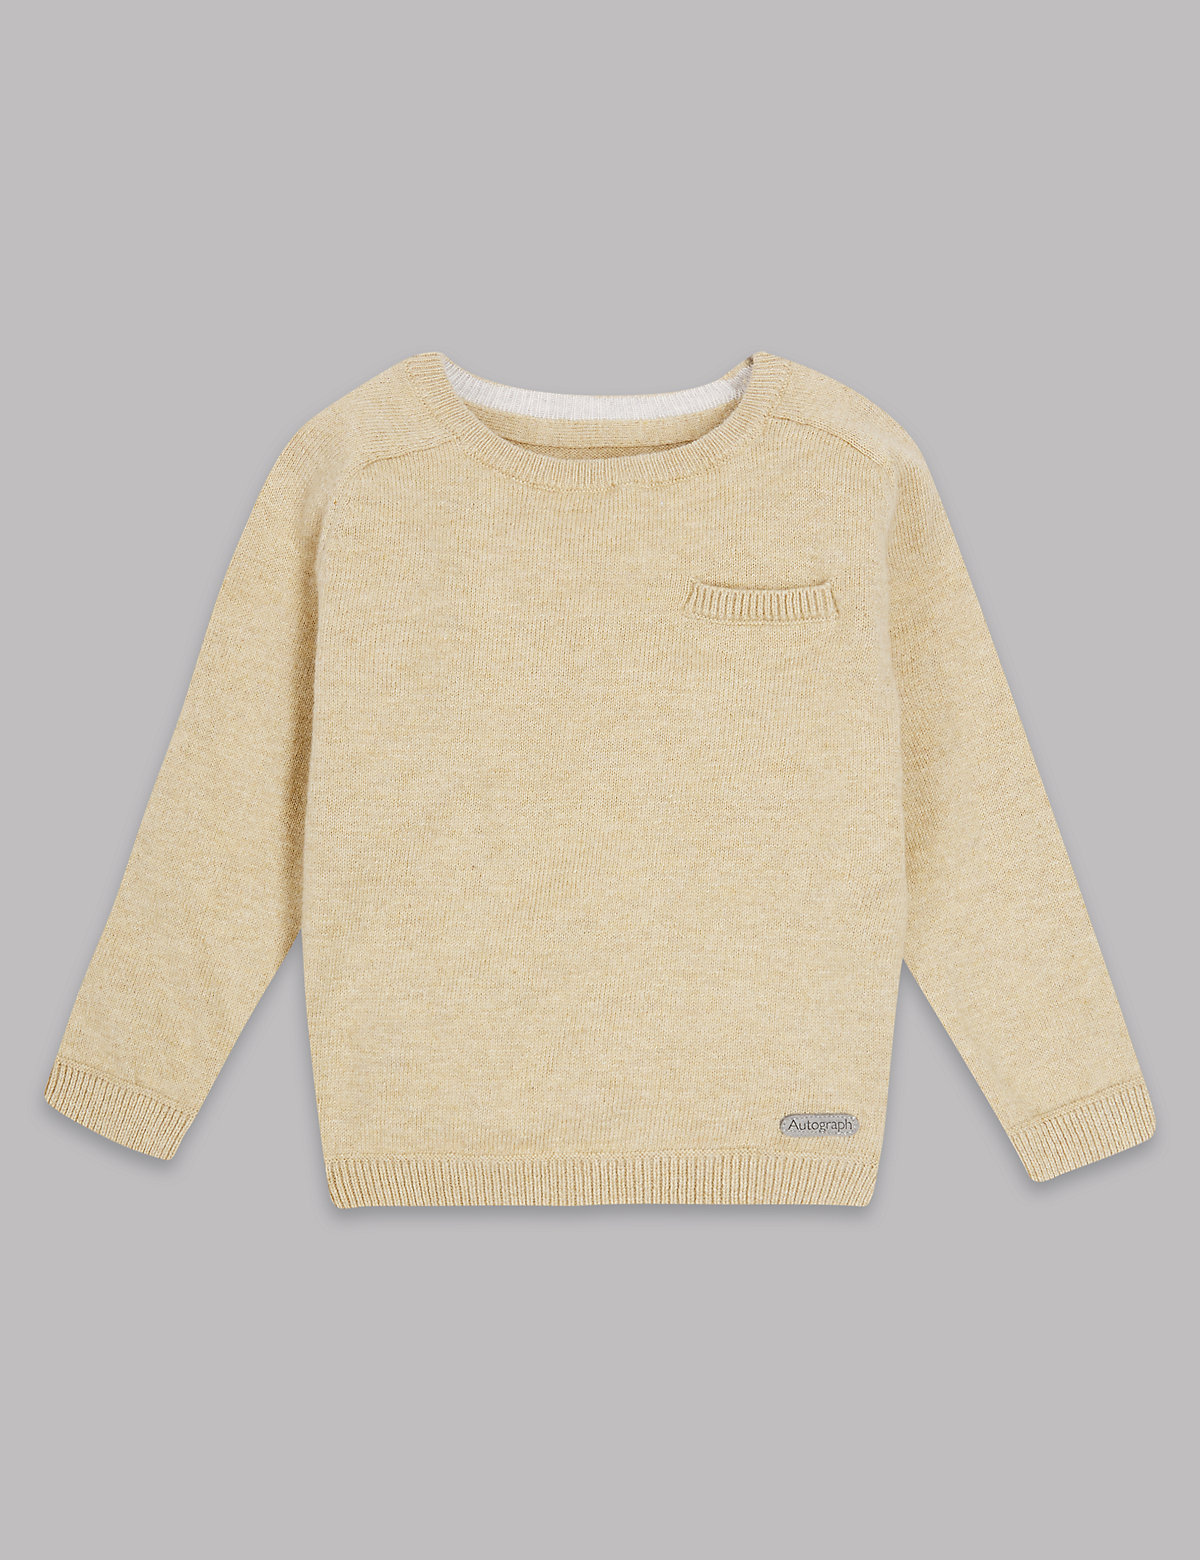 Autograph Cable Knit Jumper